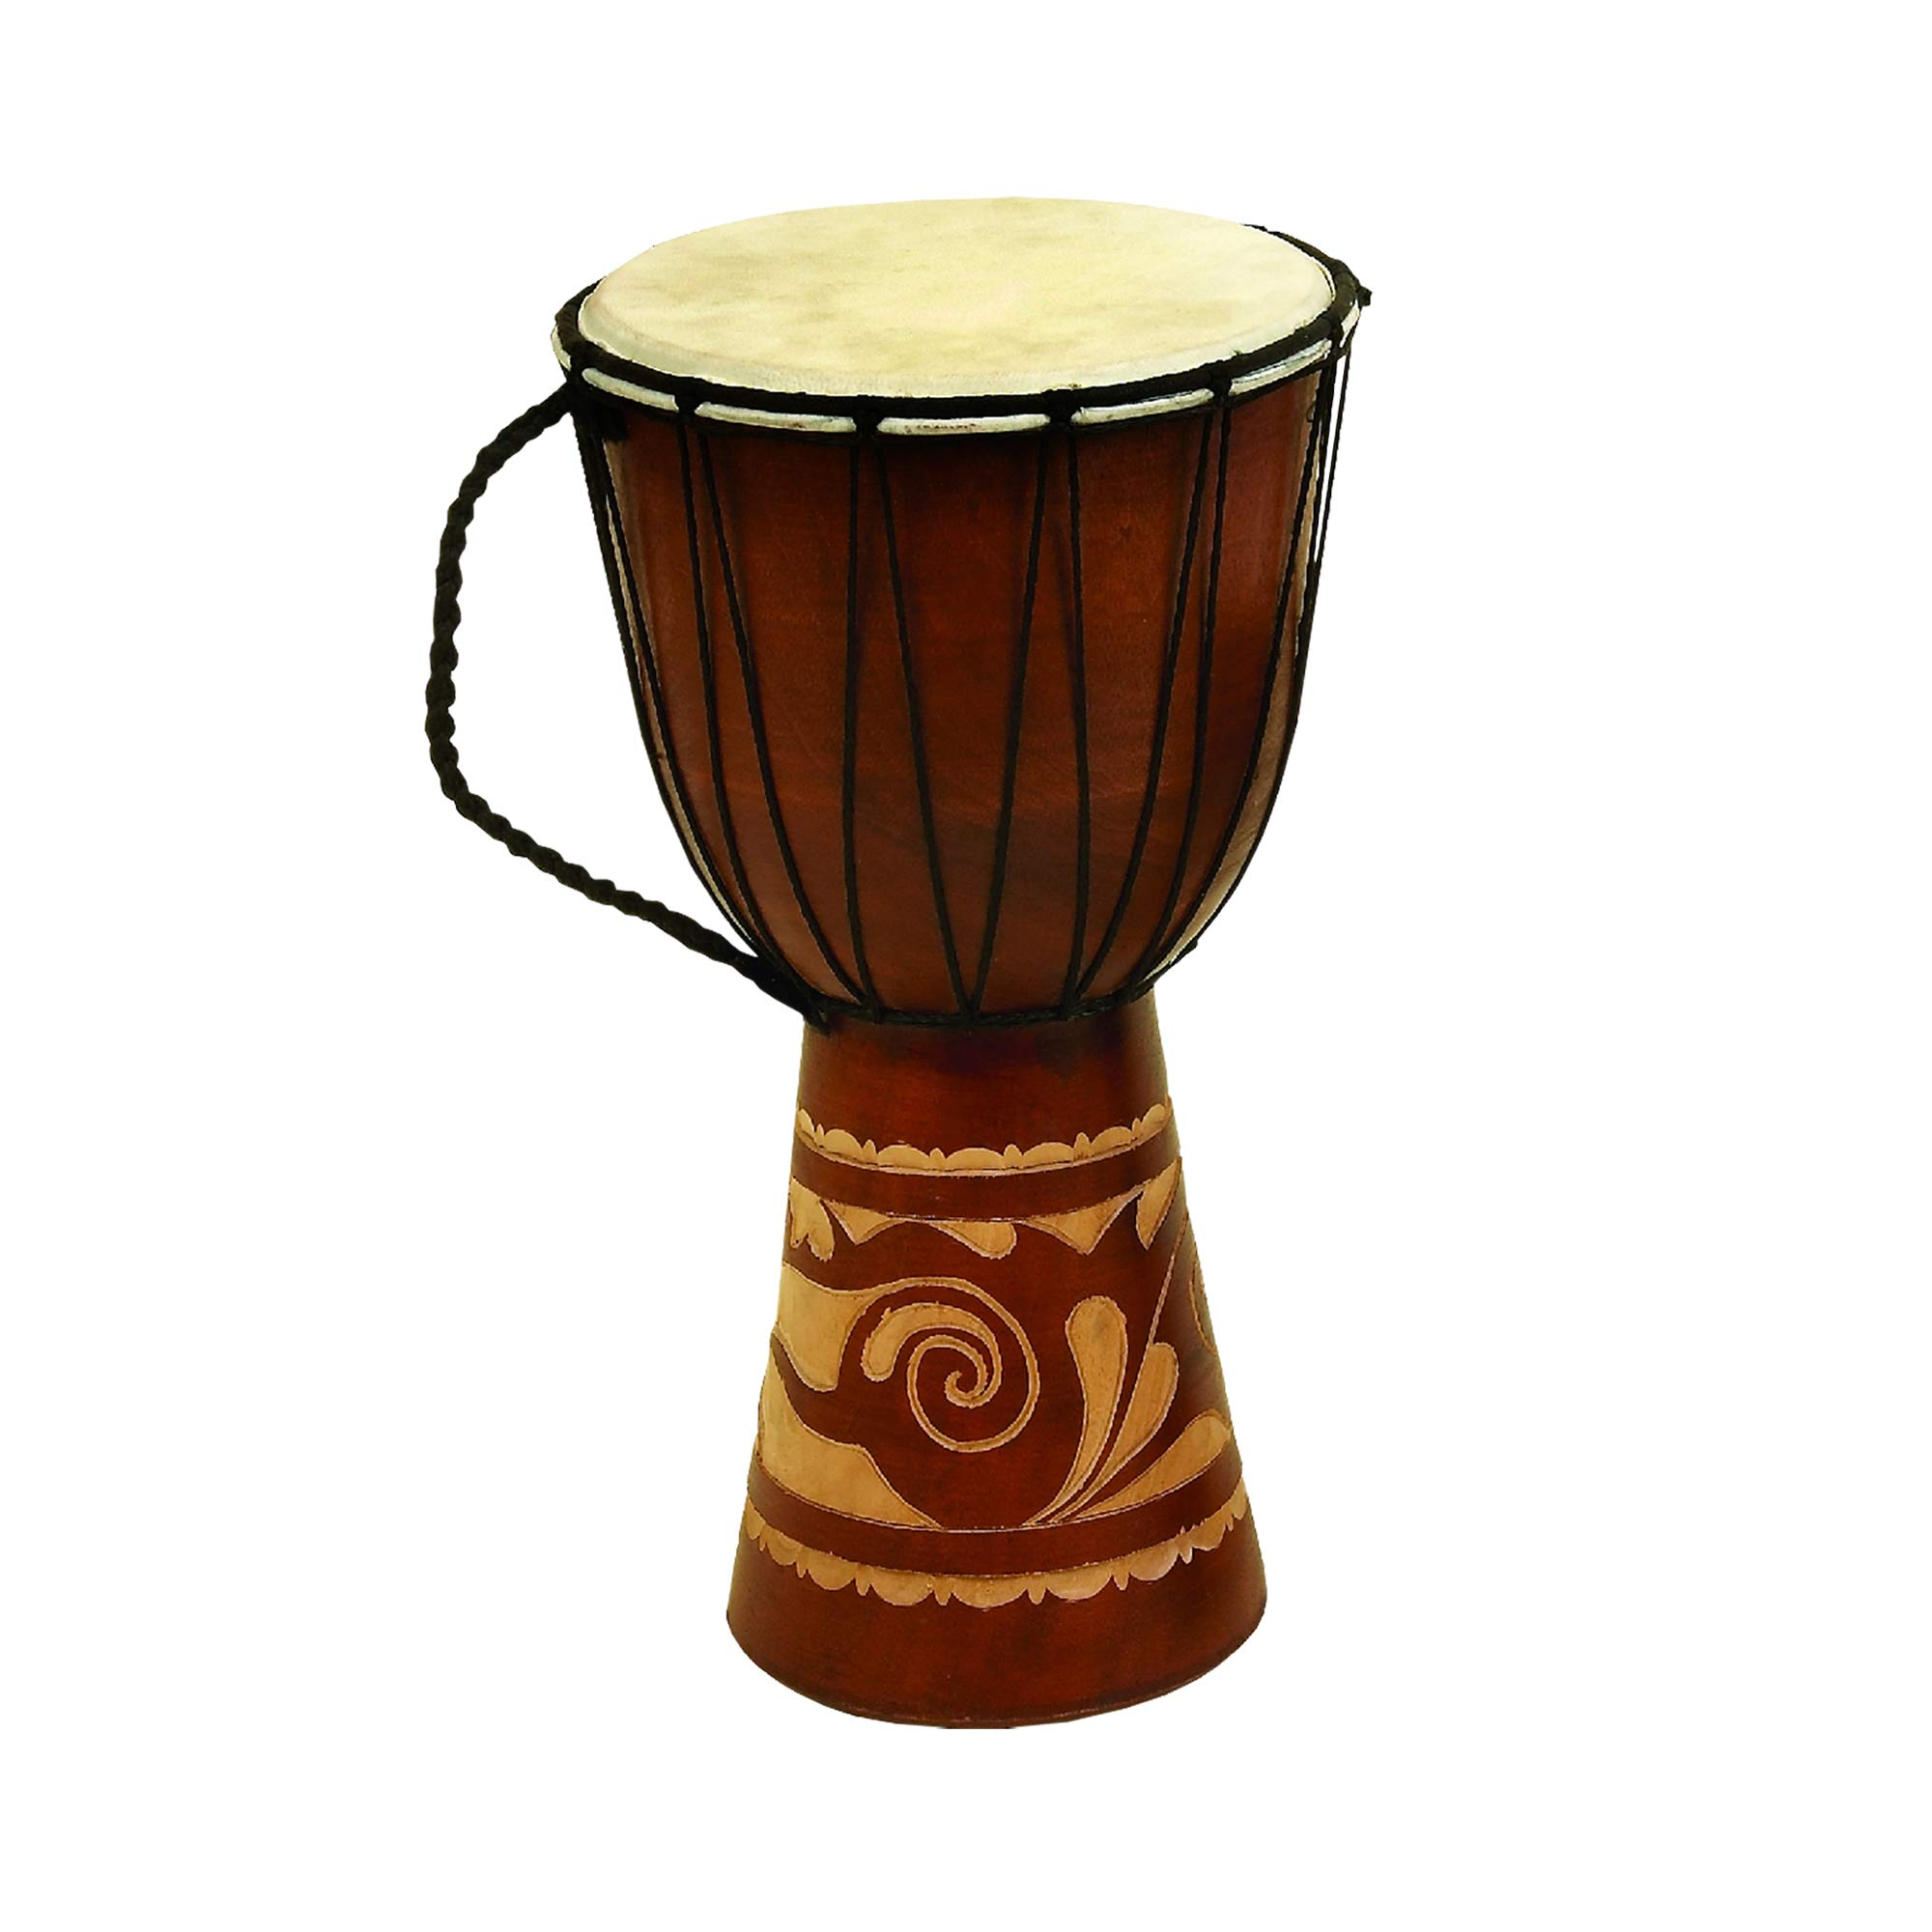 Benzara Decorative Wood and Faux Leather Djembe Drum with Side Handle, Large, Brown and Cream, by Benzara